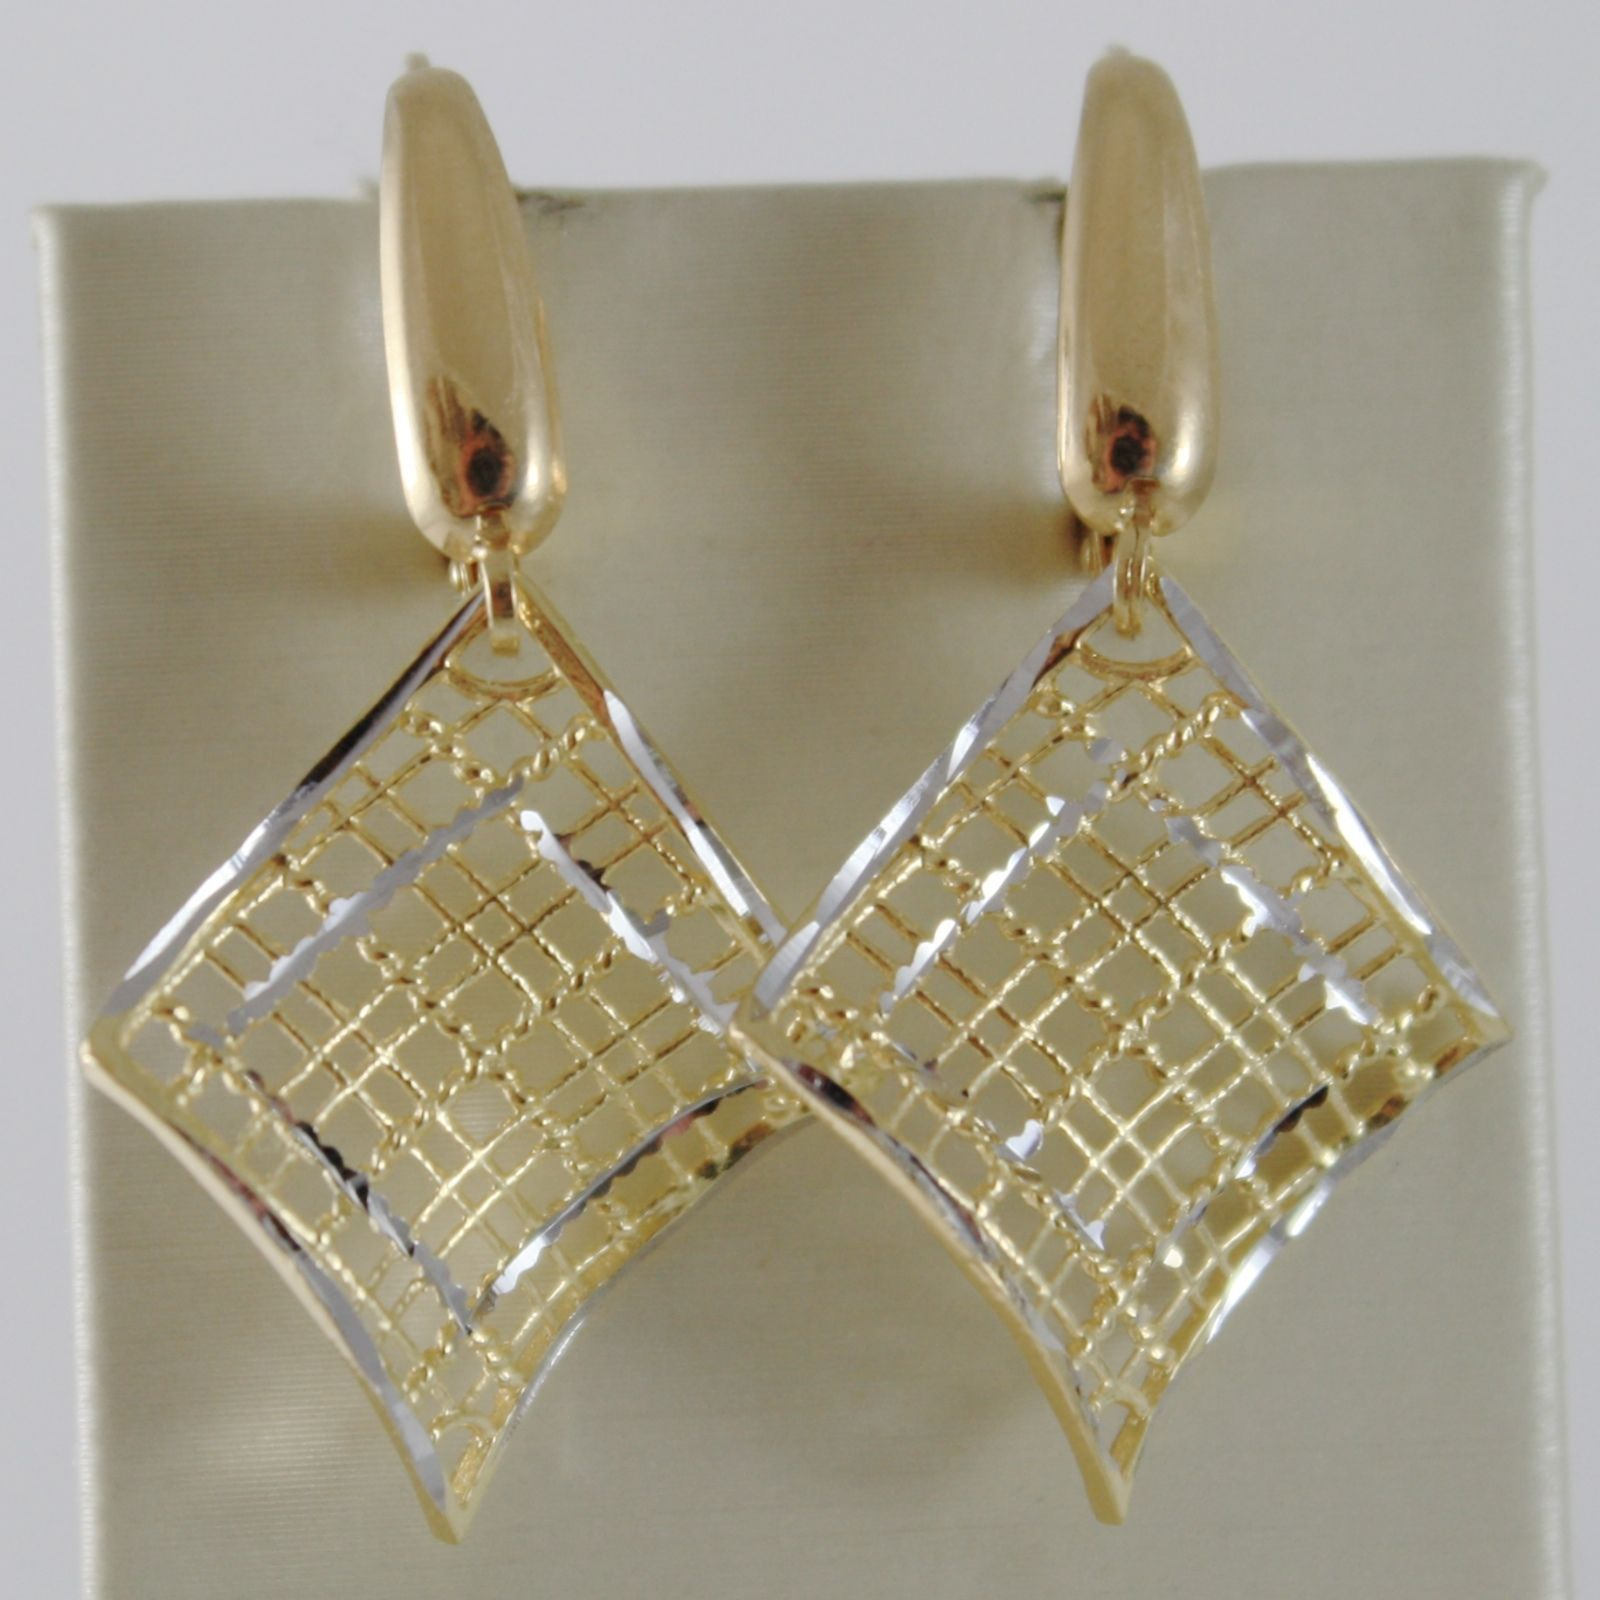 18K YELLOW WHITE GOLD PENDANT LEVERBACK EARRINGS FINELY WORKED WAVE MADE ITALY